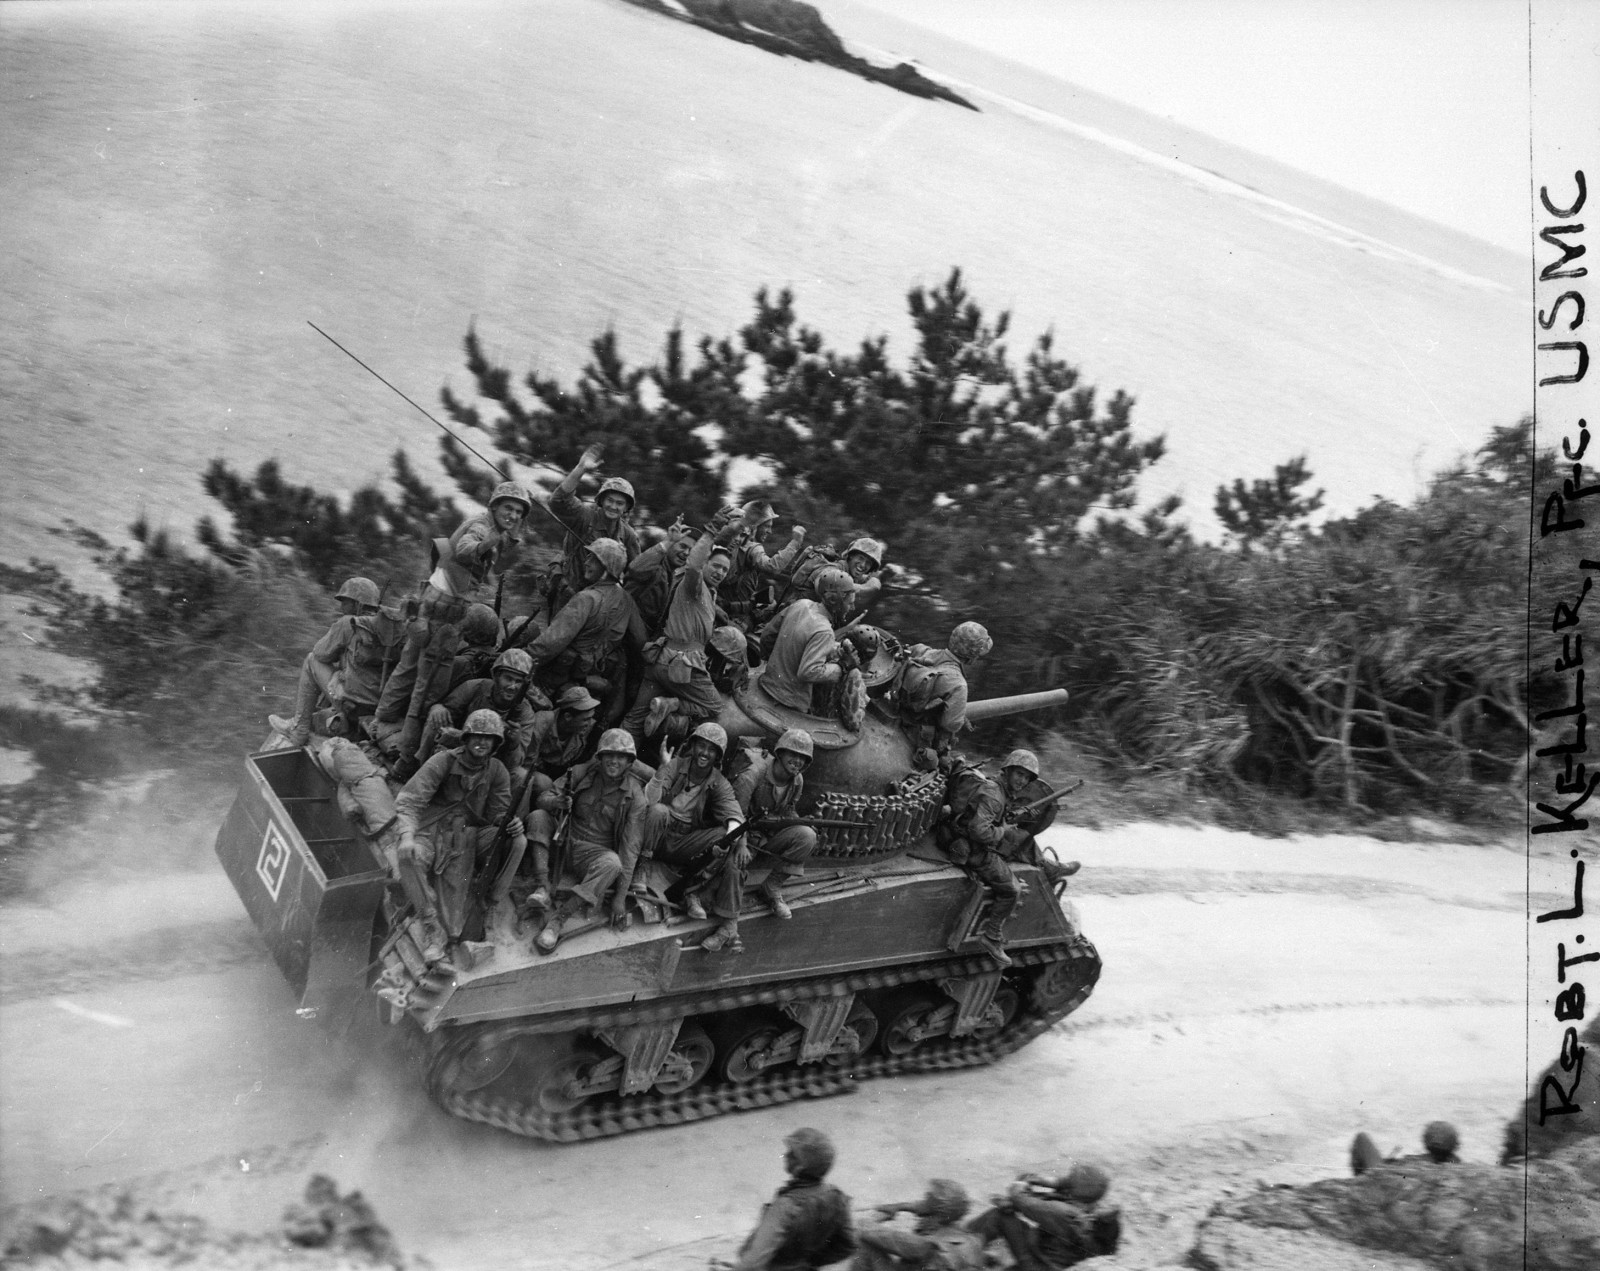 Riflemen of the 29th Marine Regiment ride a M4A3 Sherman 105mm of Company A, 6th Tank Battalion during the 6th Marine Division's drive on Chuda along the west coast of Okinawa. After expecting a contested landing on April 1, 1945, and seeing little of the Japanese, the Americans were in high spirits as objectives are taken ahead of schedule in Northern Okinawa; the Shuri Line would rob them of their high morale. The 29th Marines cut off the Motobu Peninsula and seized Chuda at 1200 Hours on April 6, 1945. Tank-infantry teams encountered sporadic resistance during the initial invasion; most problems were from the Japanese blowing bridges as they retreated inland. Destruction of bridges had been inept; frequently only a span of the bridge had been blown or cracked. The engineers cut quick bypasses for the vehicles, repairing the broken spans later. 500 M4A3 Shermans with the M4 105mm gun were built in late 1944. Later versions of the 105mm Sherman had a more advanced horizontal volute spring suspension (HVSS) with wider tracks that allowed for a smoother ride. Note partially dismantled deep wading gear to allow the M4A3 to move through deep water during the landings a few days before. The M4A3 Sherman with the M4 105mm howitzer was not popular with the tankers, who preferred the M1 76mm high-velocity gun in case of tank-against-tank engagements. However, the 105mm-equipped Shermans were very popular with ground troops, who used tanks as mobile pillboxes, taking out Japanese positions with point-blank high explosive fire.